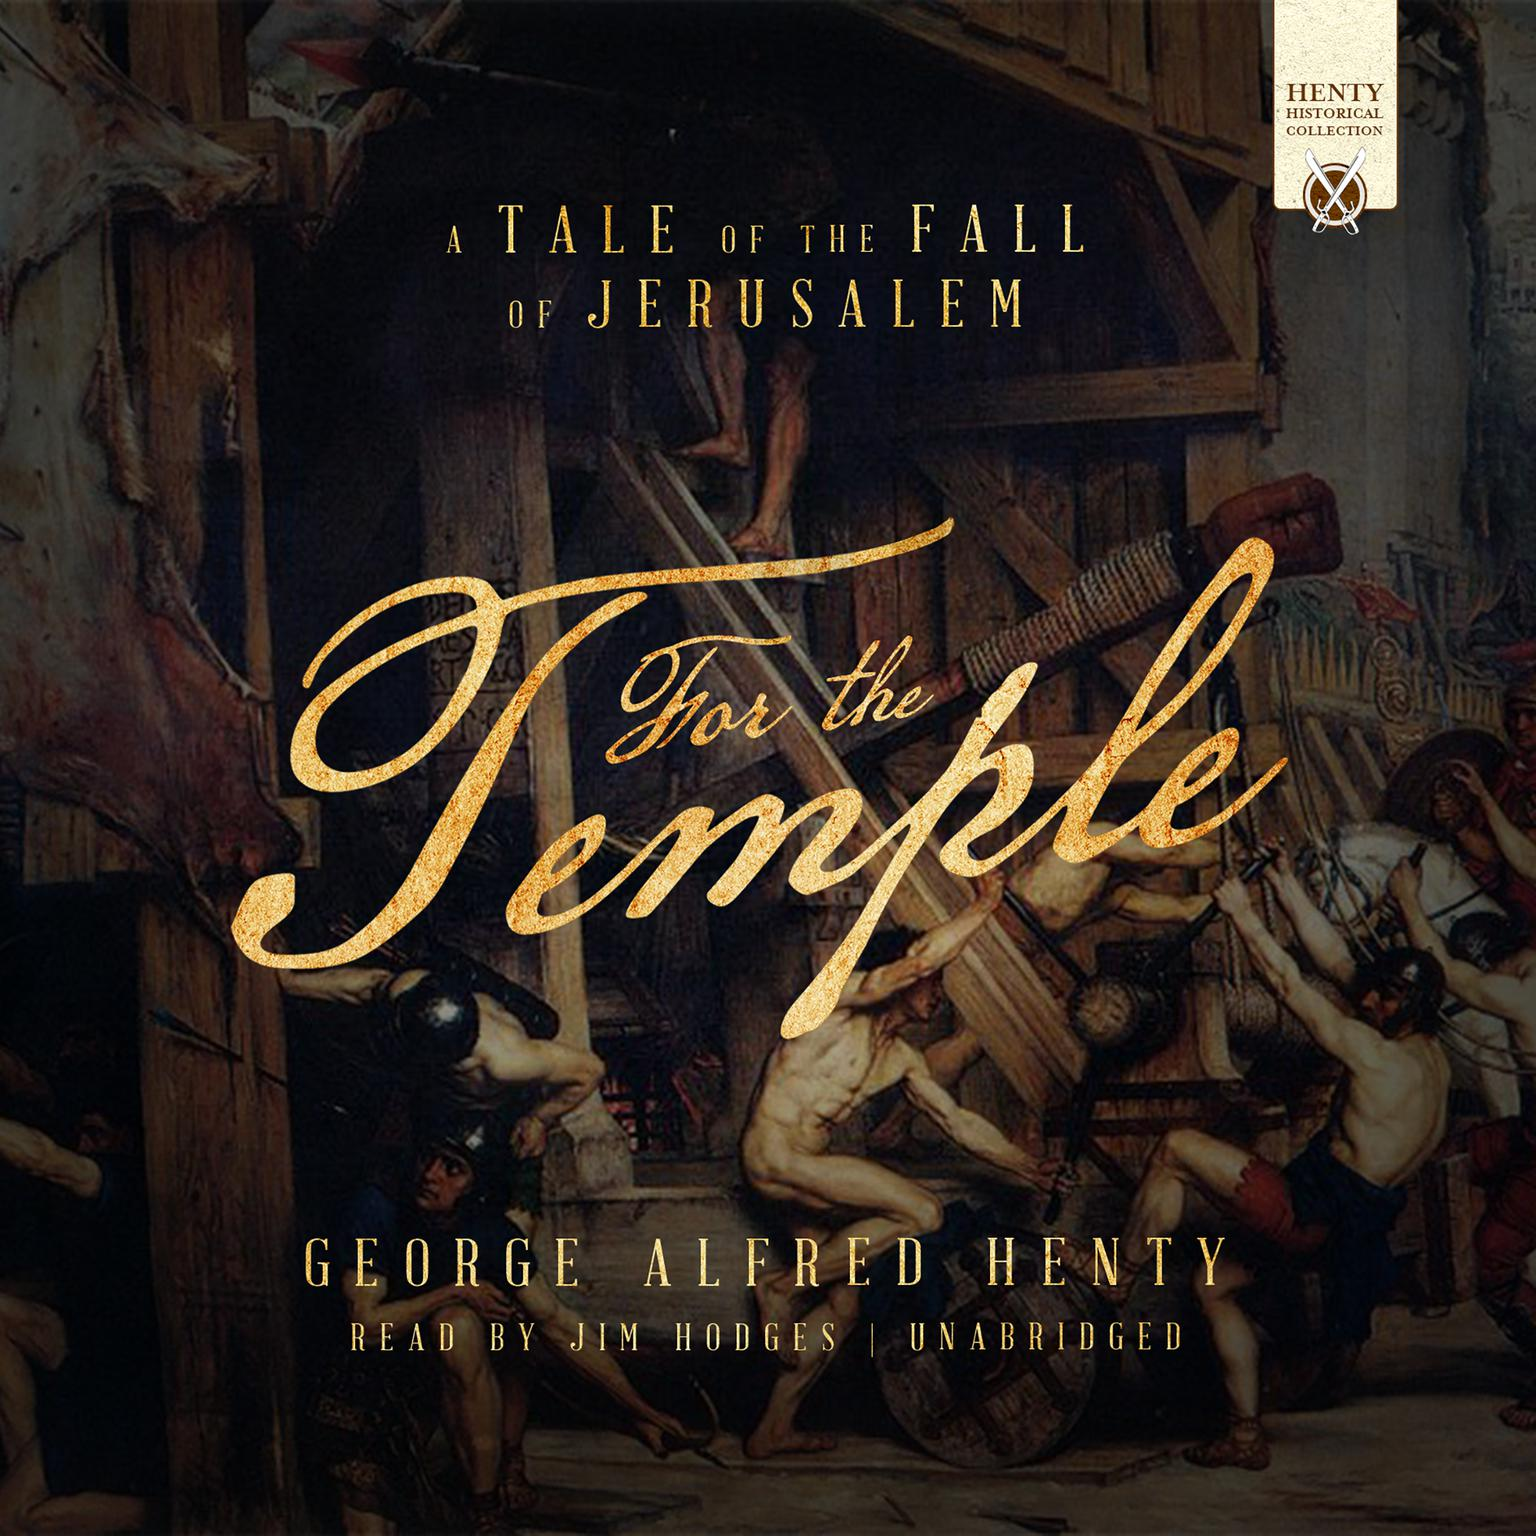 Printable For the Temple: A Tale of the Fall of Jerusalem Audiobook Cover Art